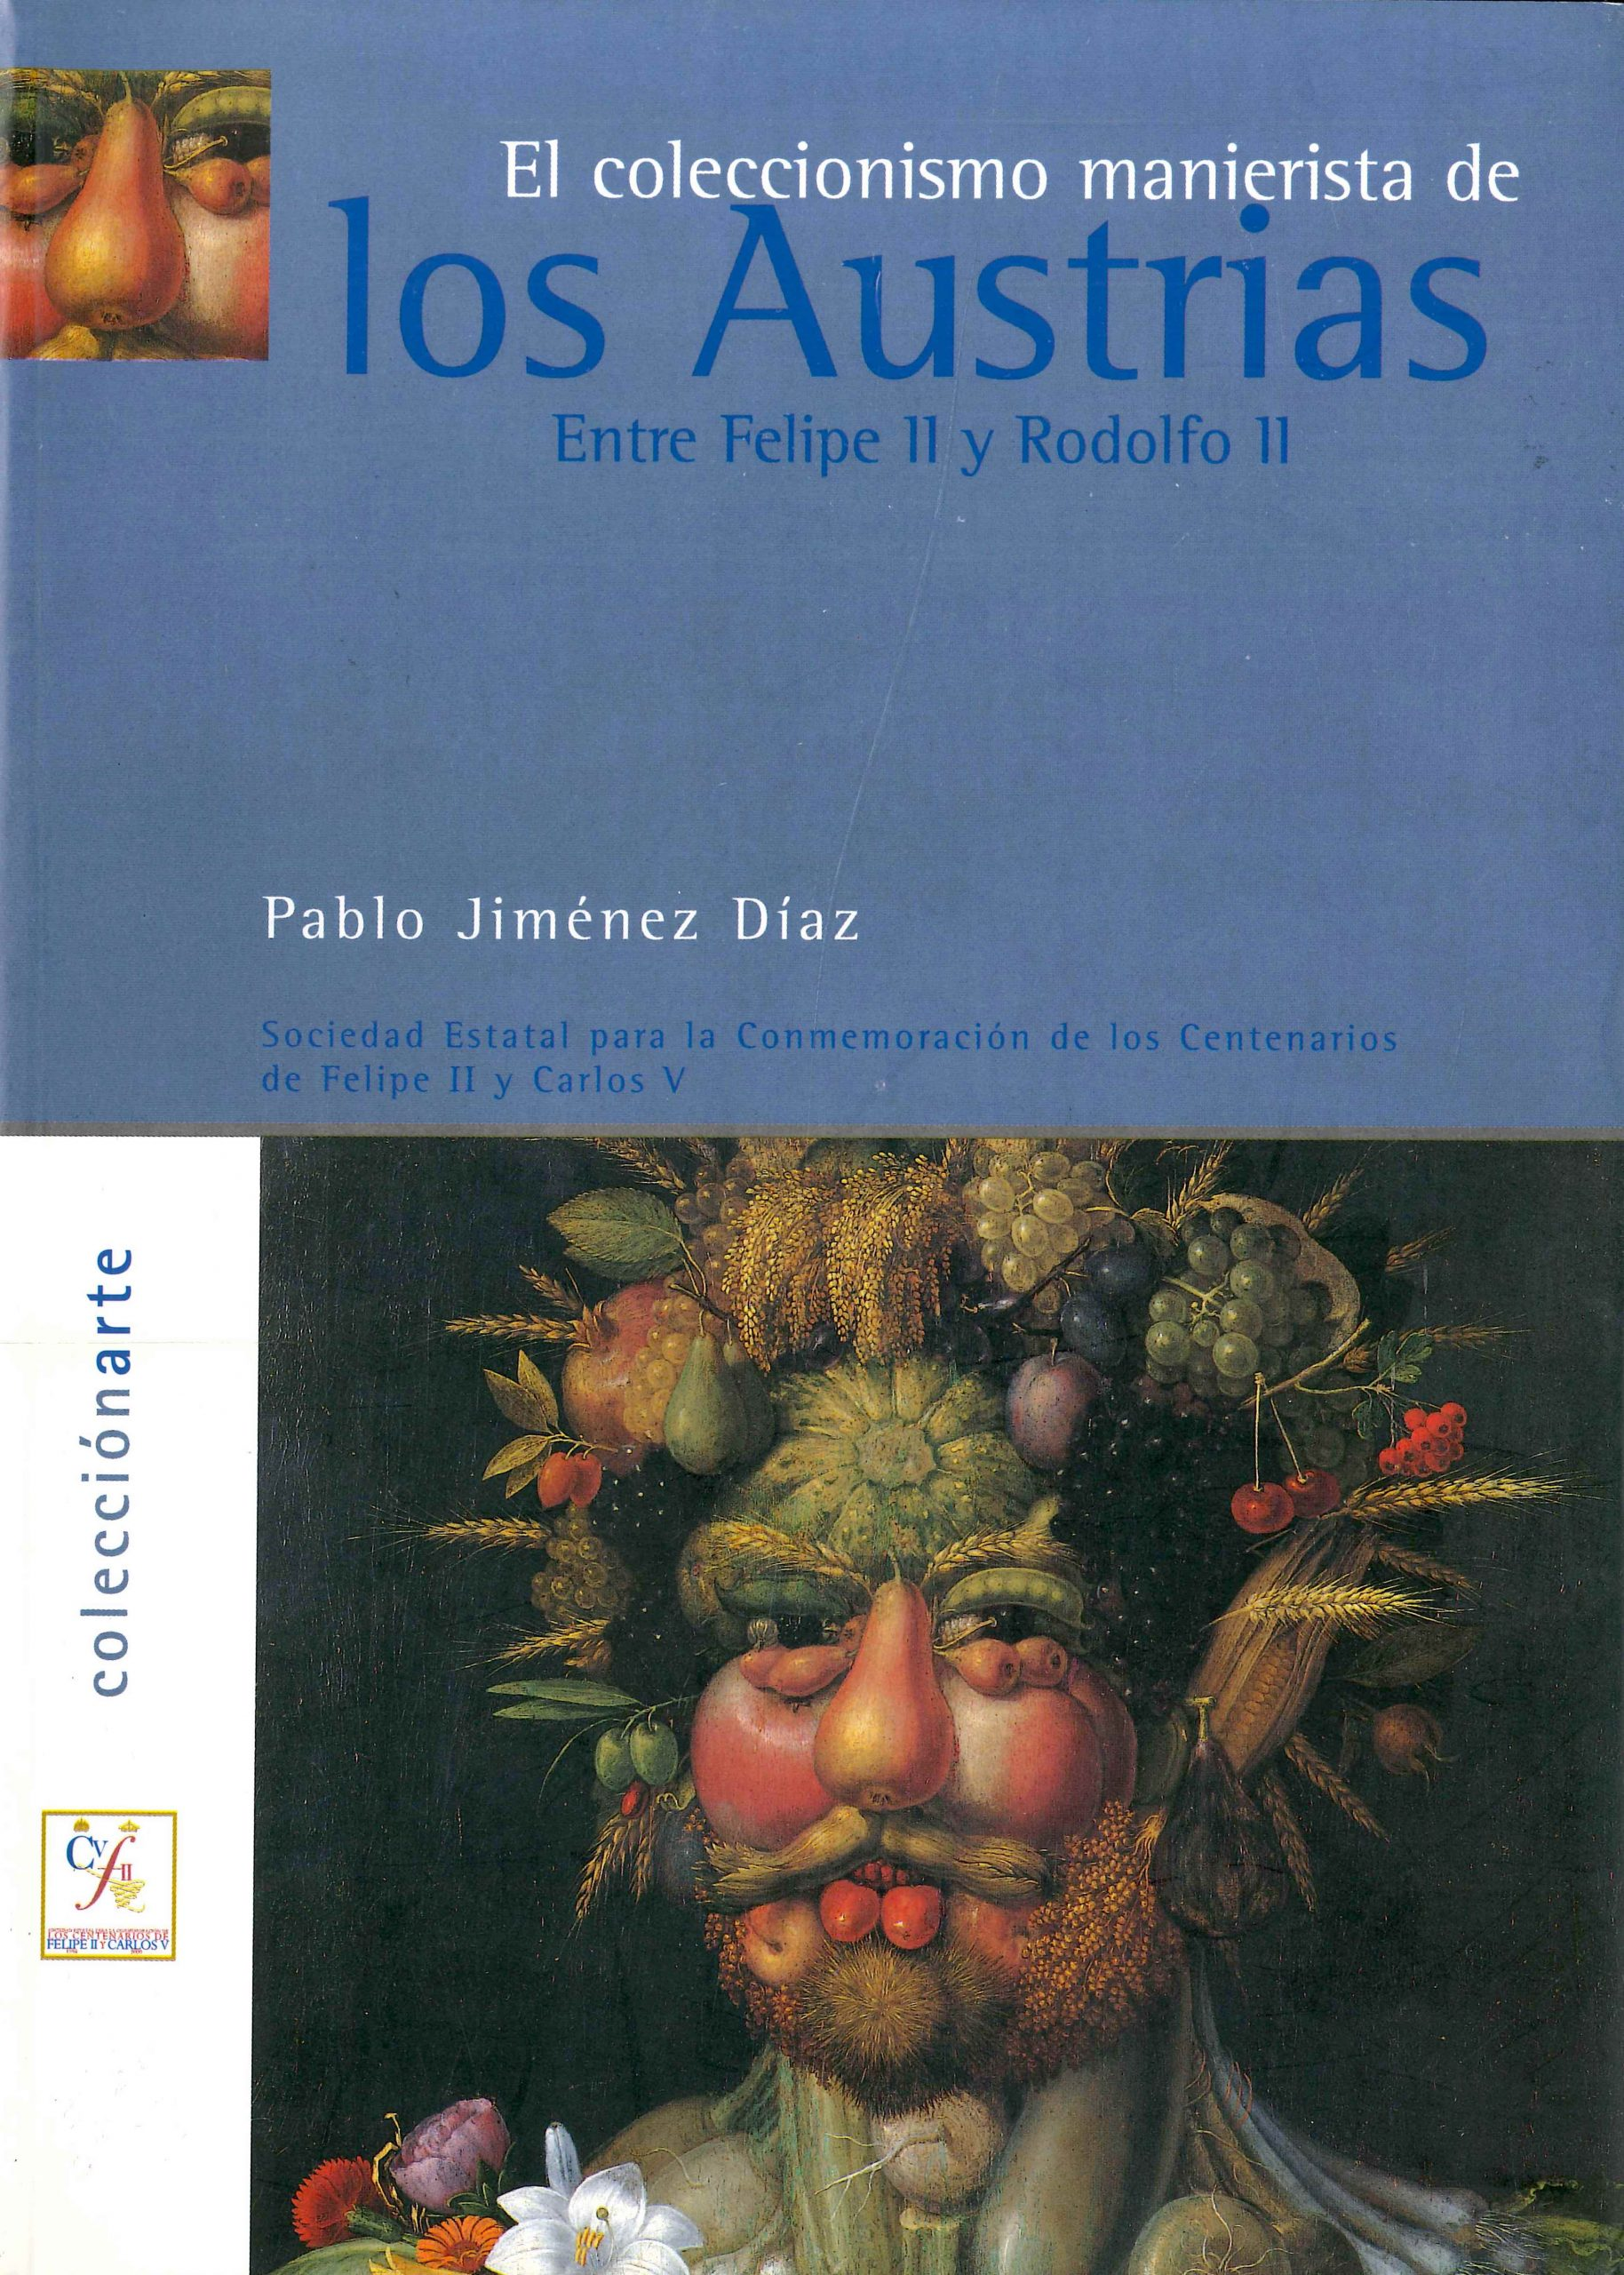 Image of cover of book featuring a painting by Giuseppe Archimboldo with a man's face made of fruit, vegetables, and flowers.